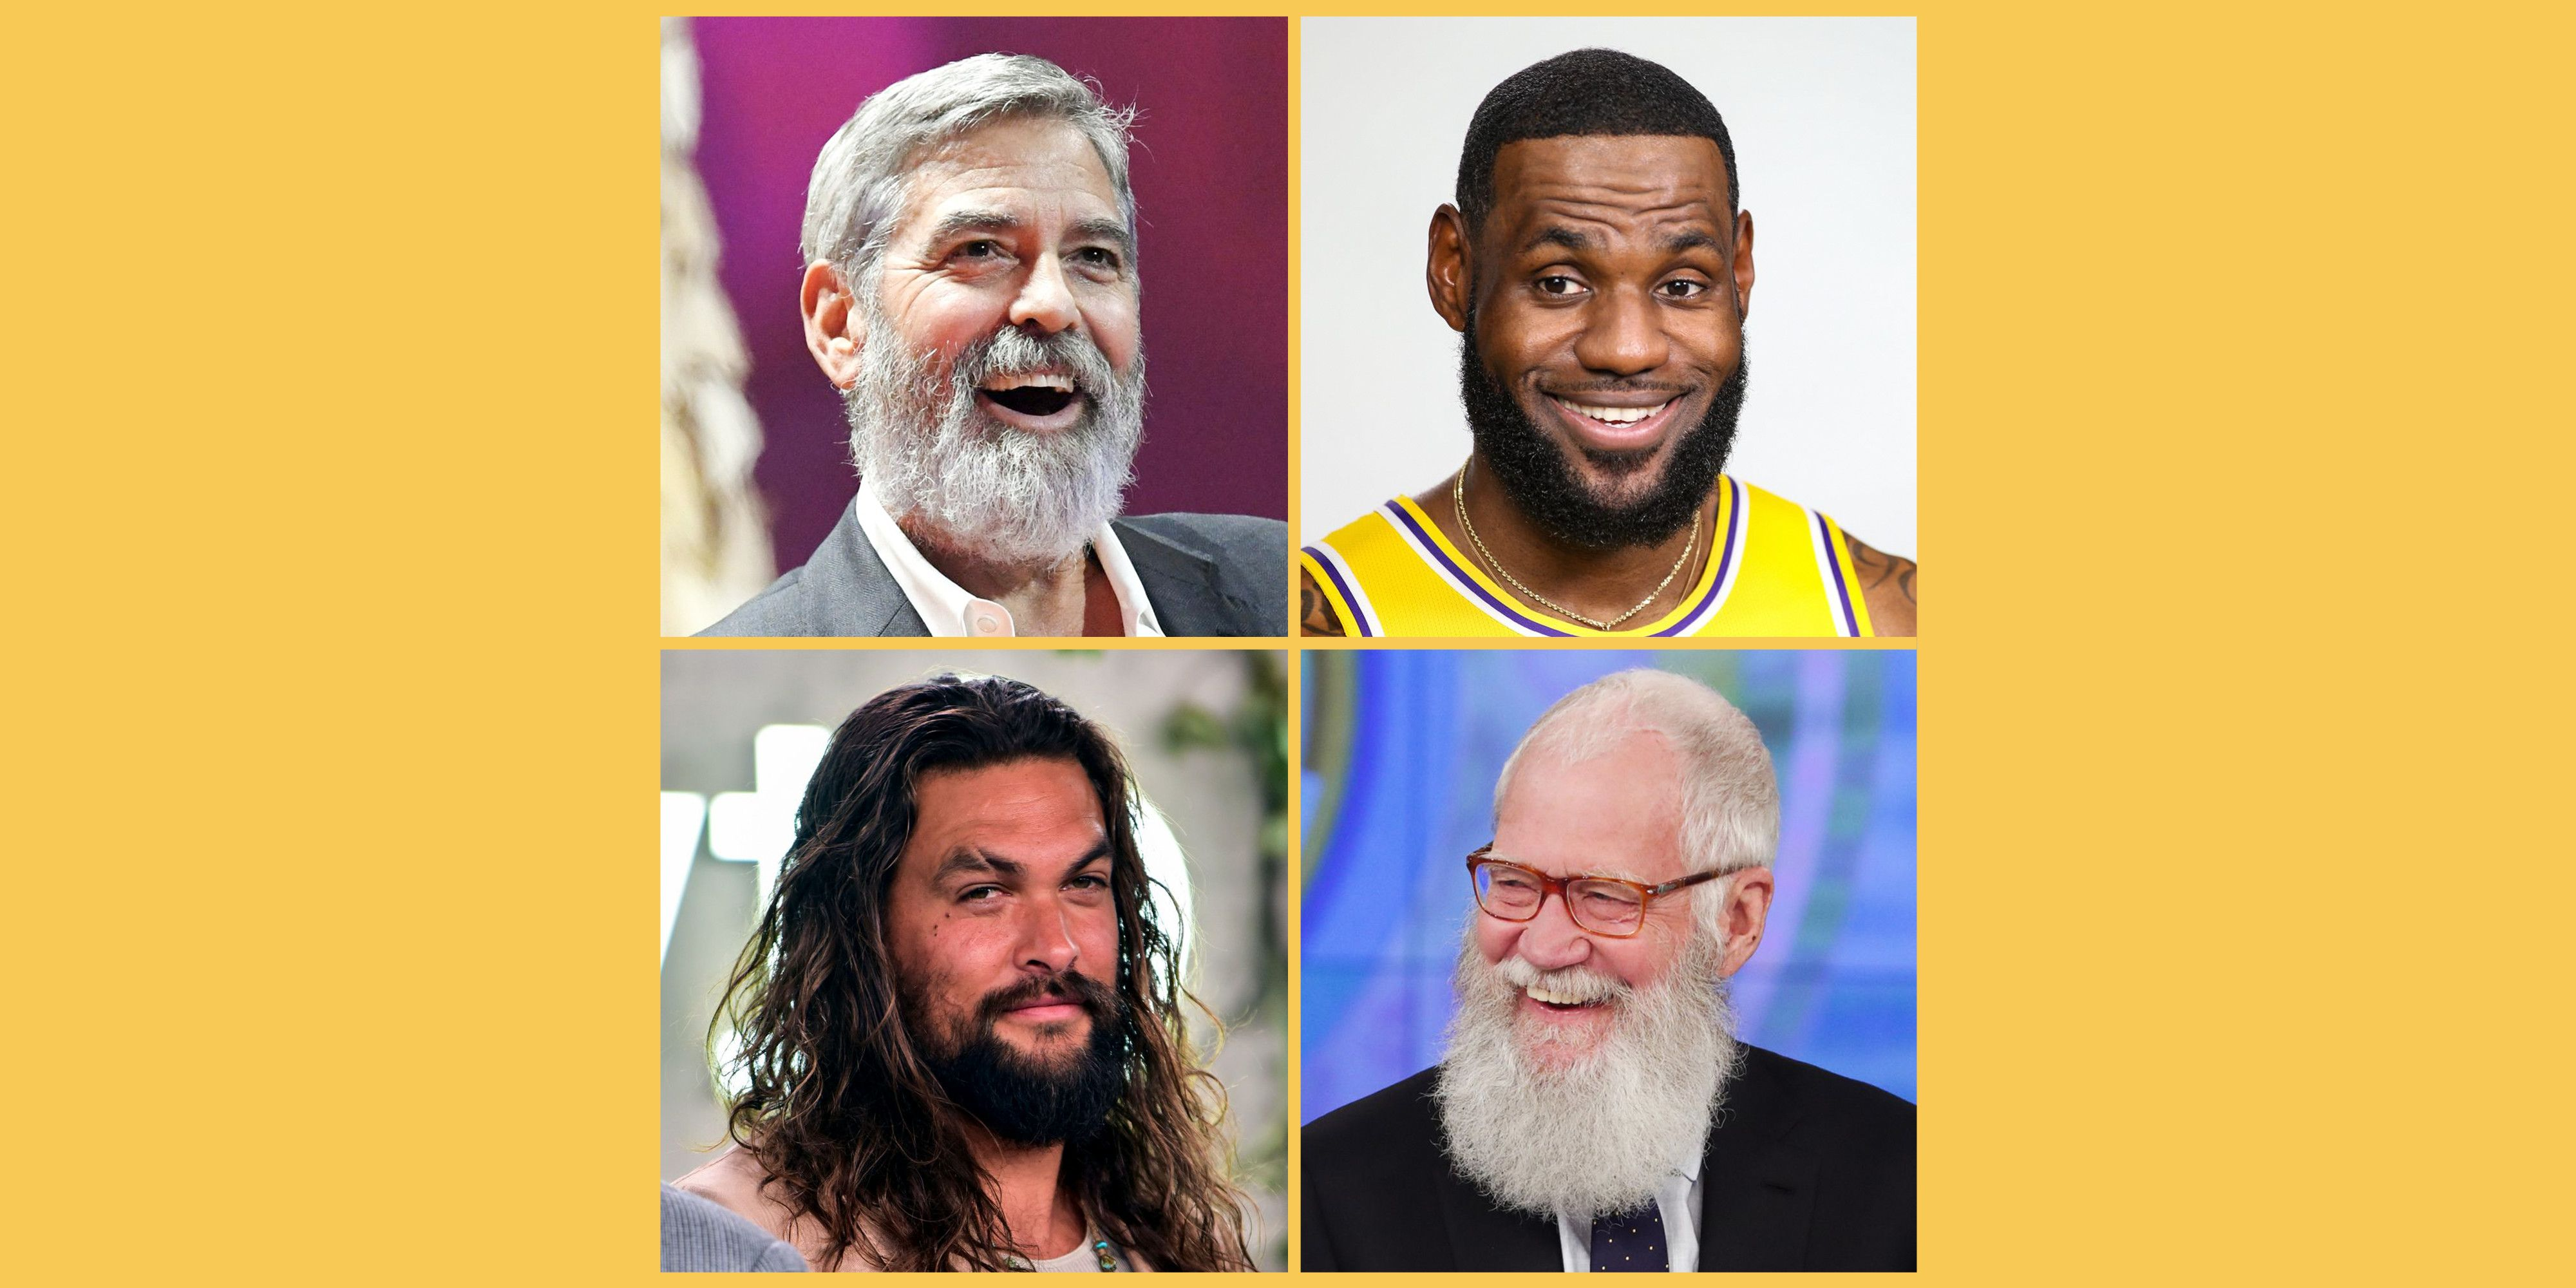 The 13 Best (and Worst) Beard Styles for Every Man